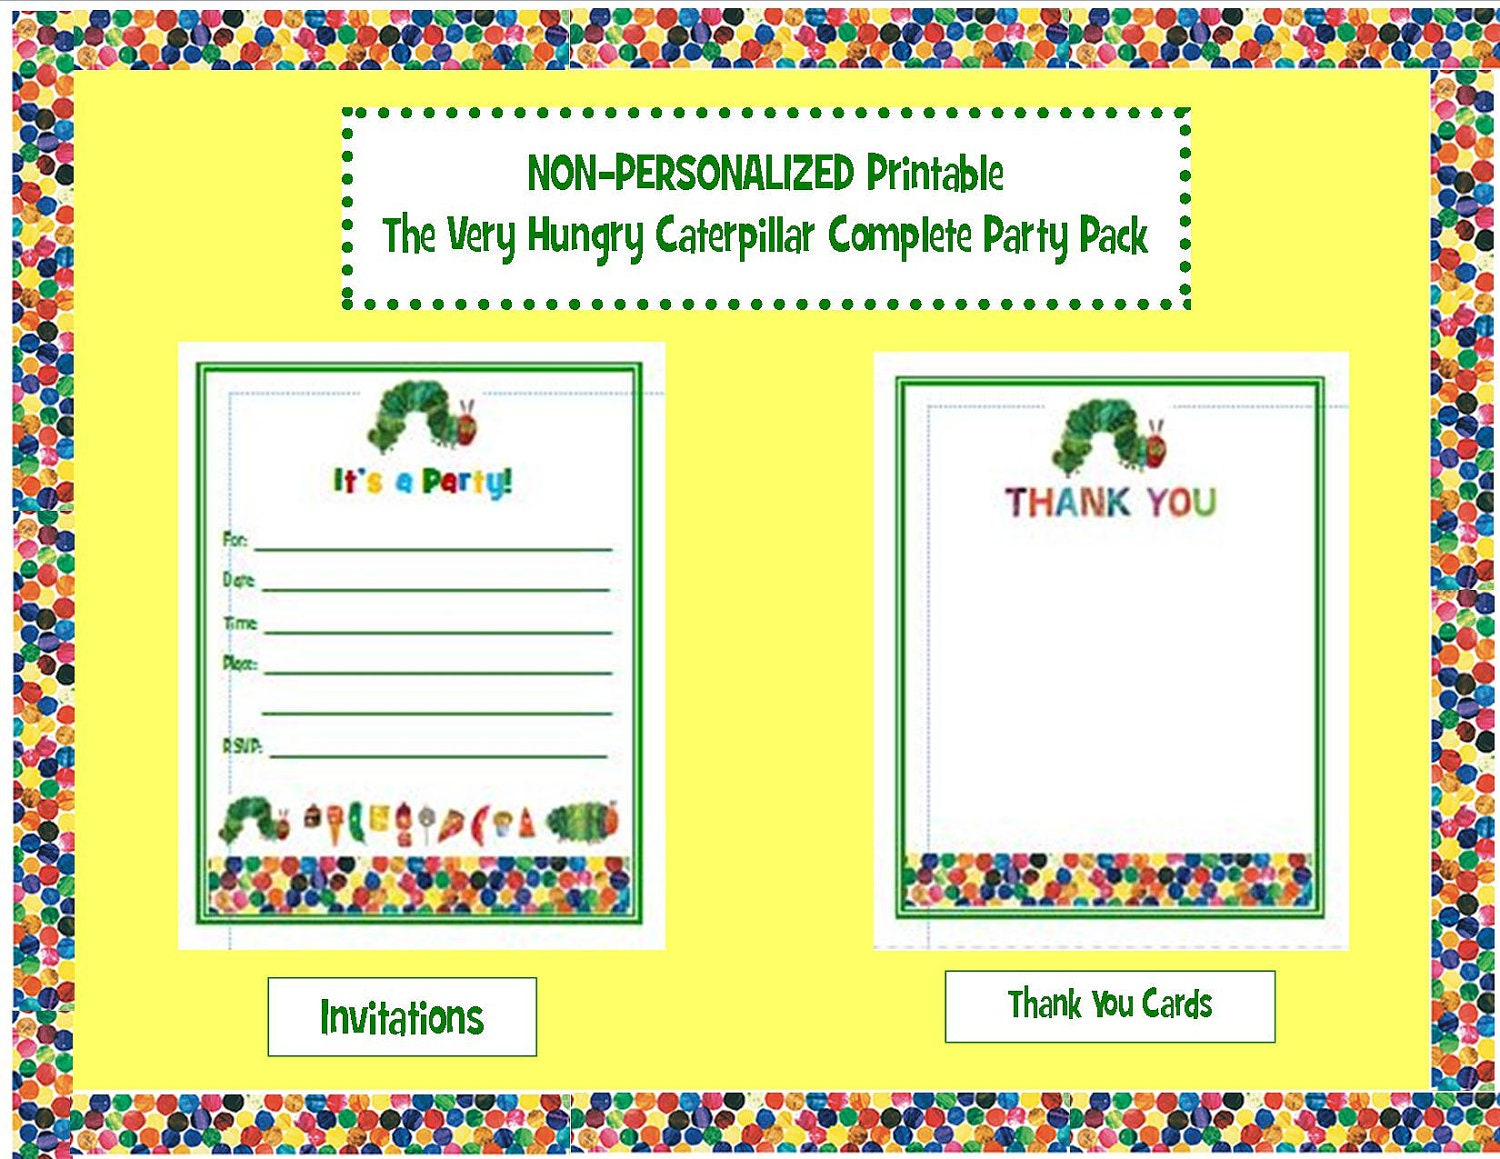 Dorable Very Hungry Caterpillar Birthday Invitations Picture ...